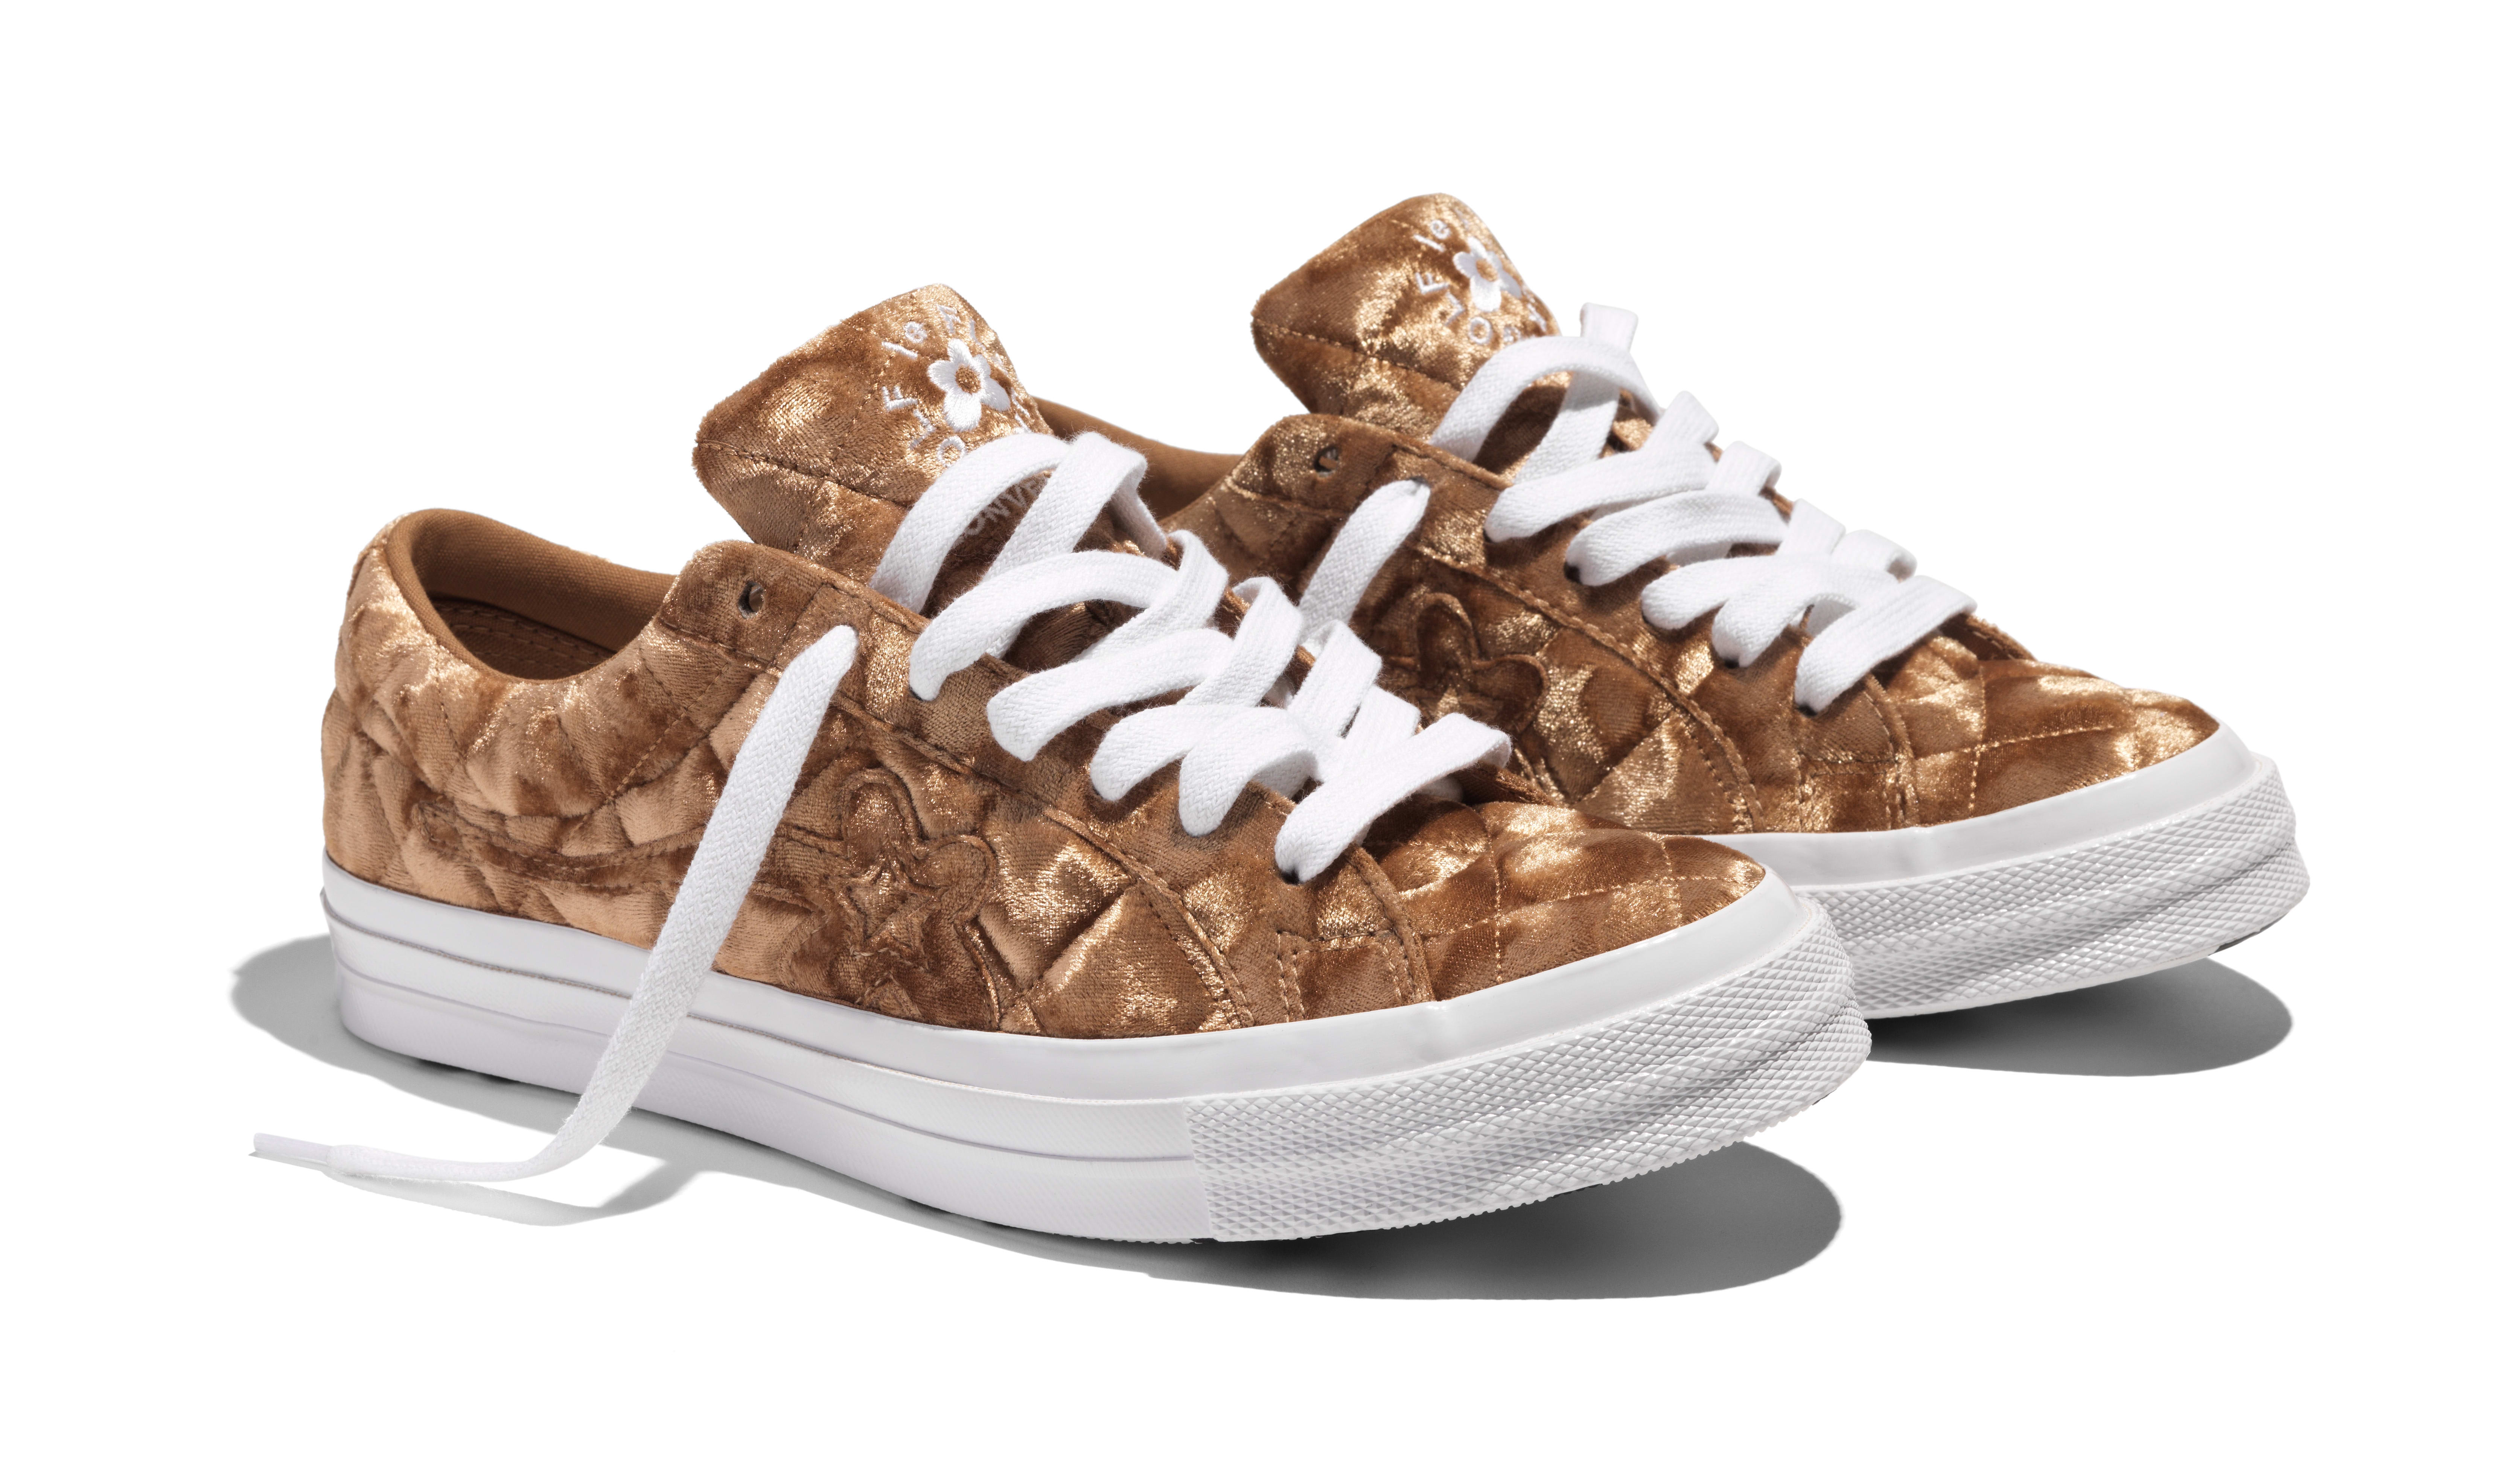 Tyler, the Creator x Converse Golf Le Fleur 'Quilted Velvet/Brown'